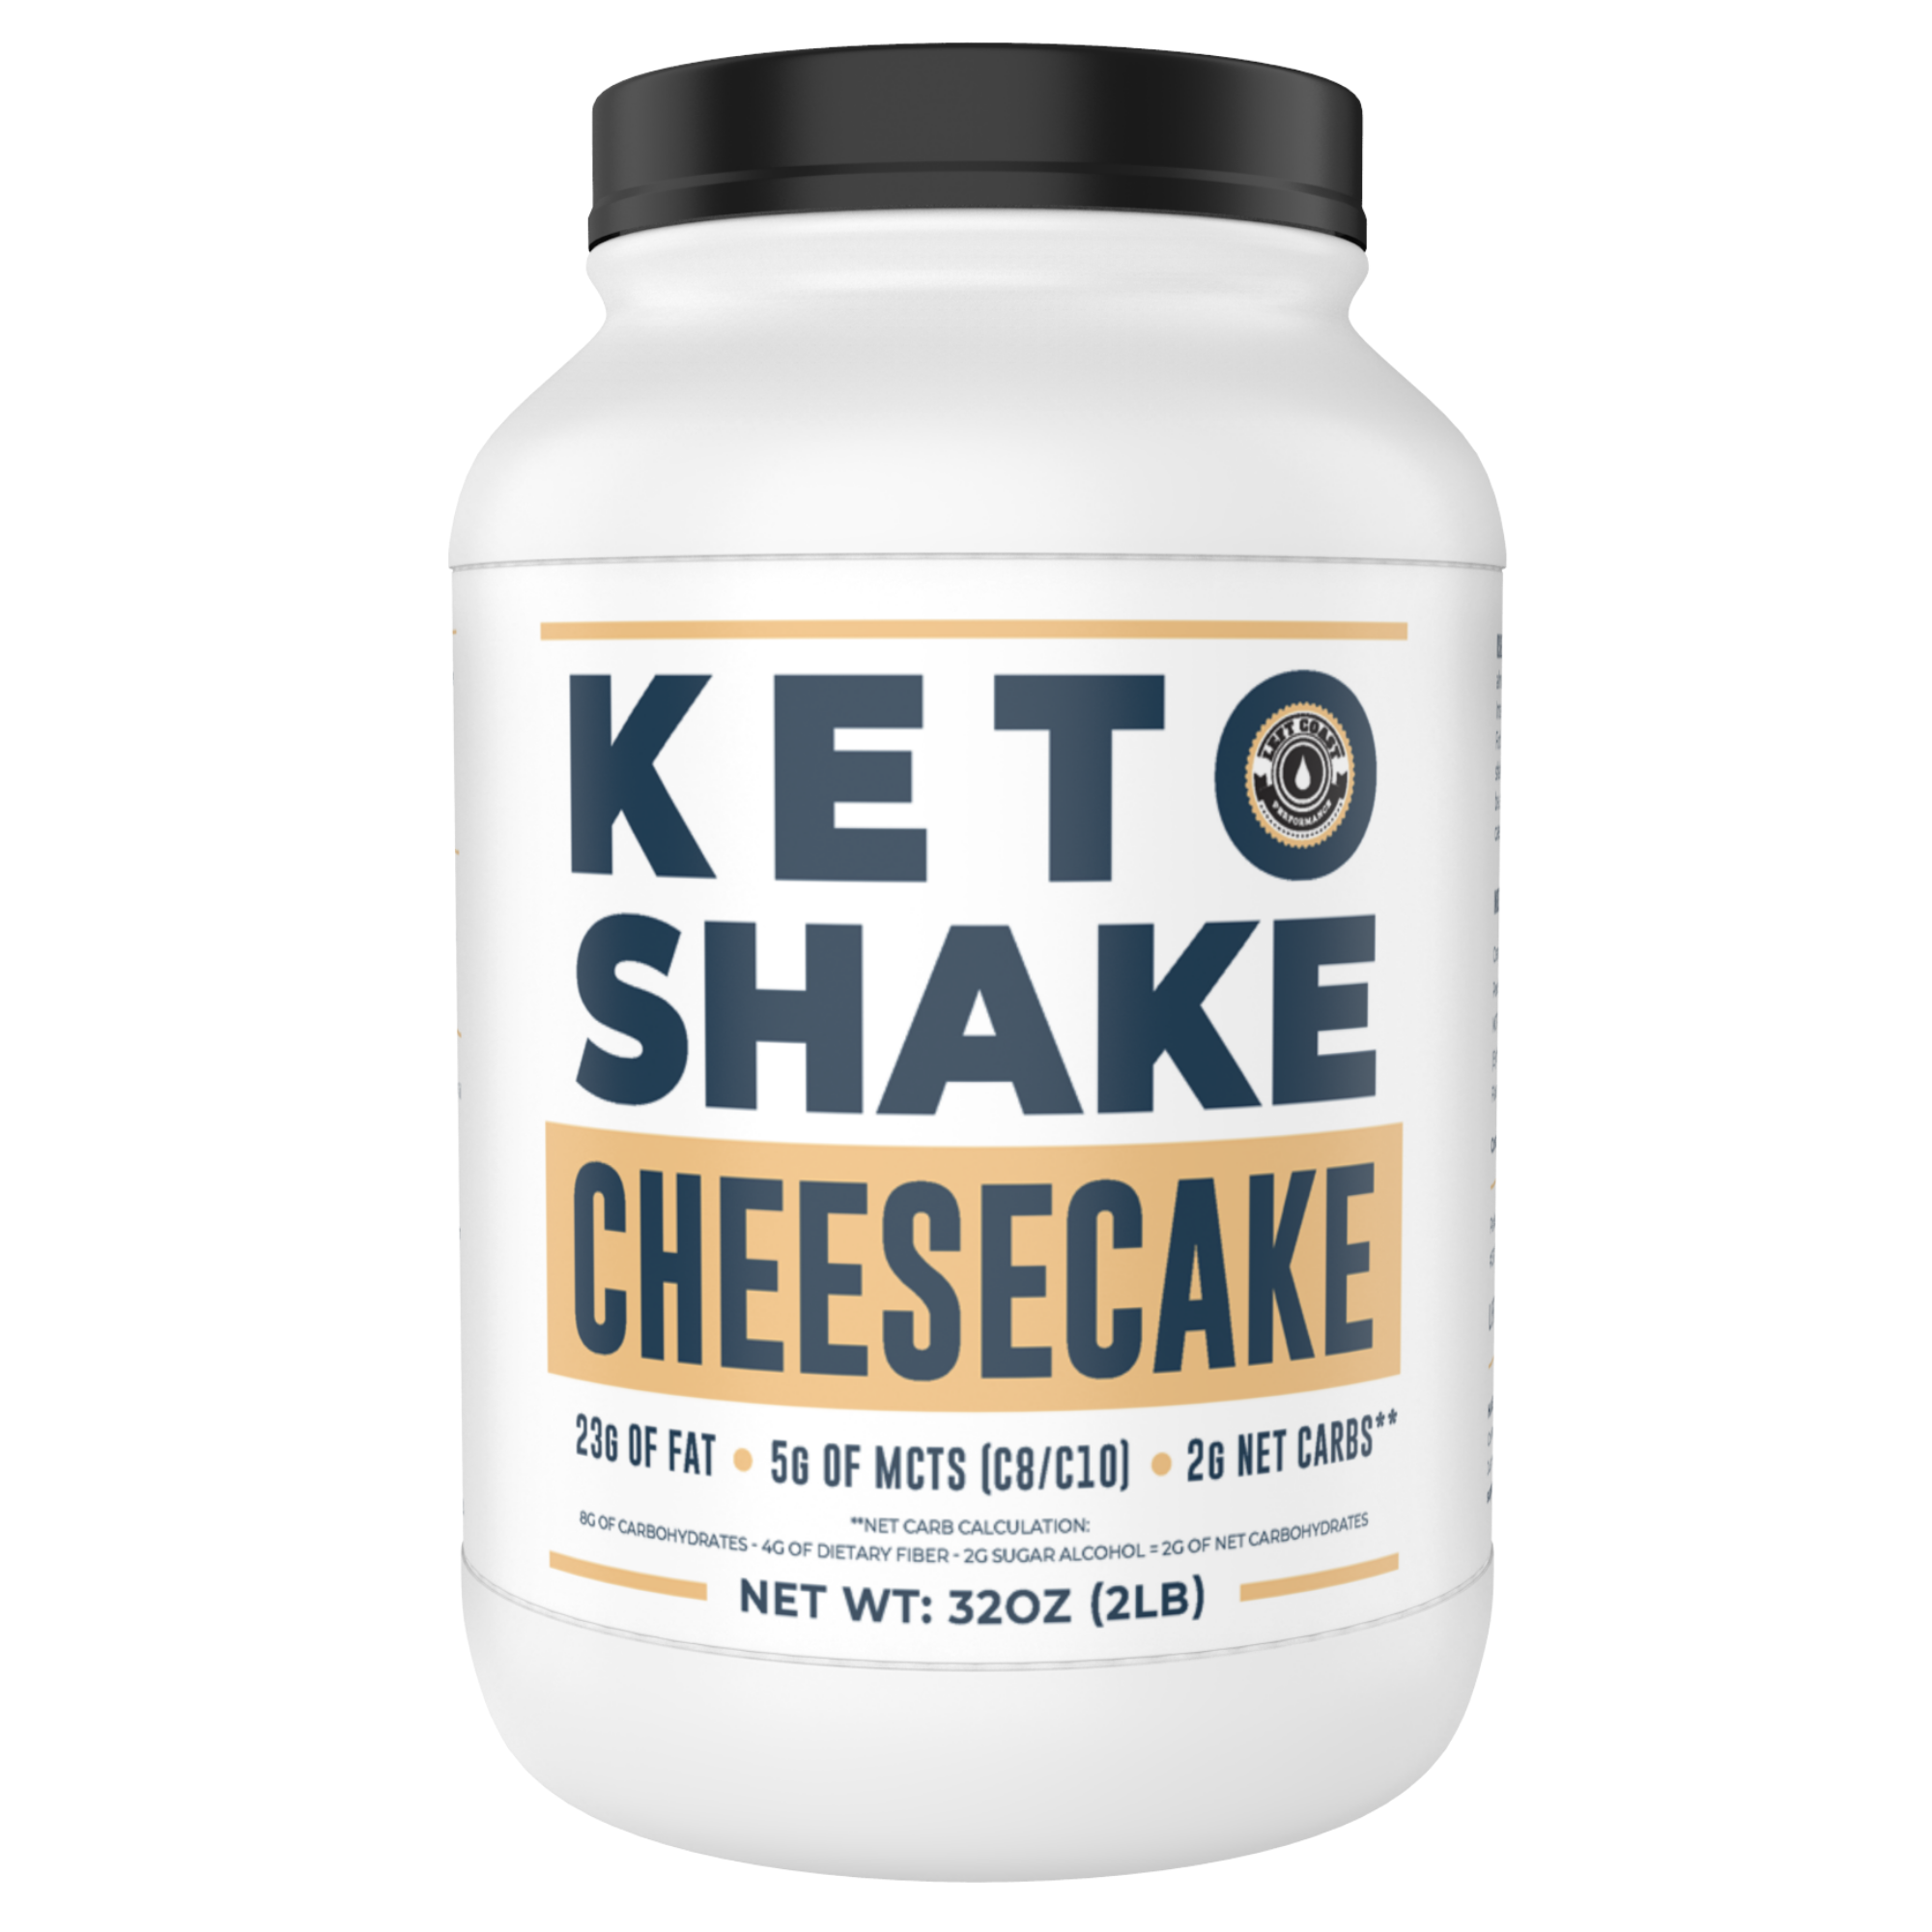 Keto Shake Cheesecake -Meal Replacement Shake Mix [2lbs]